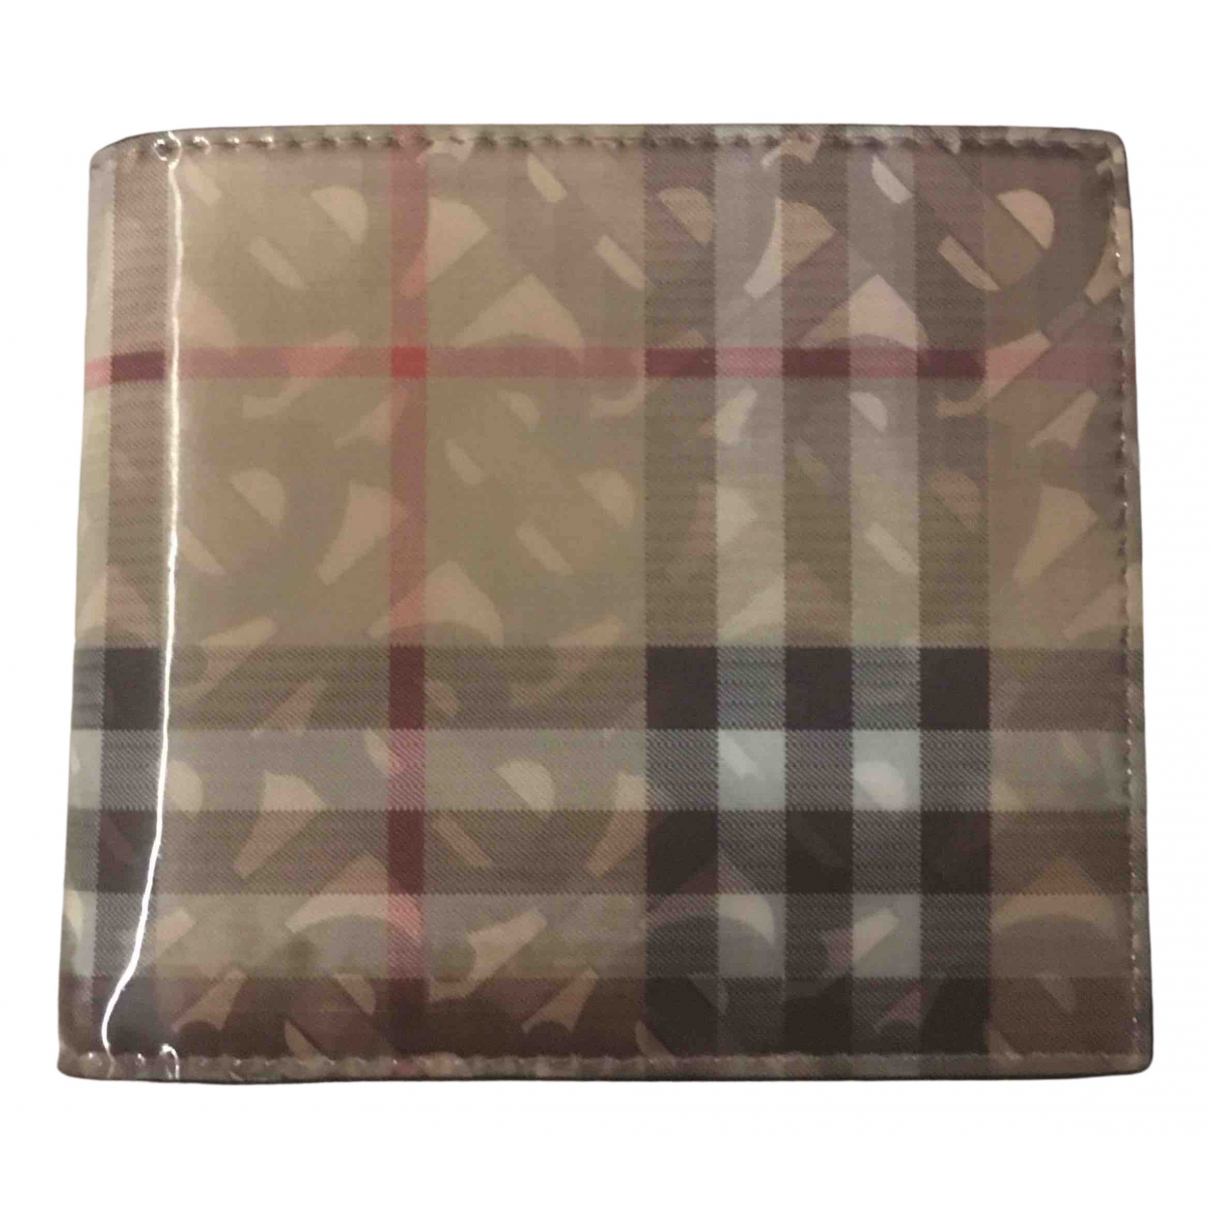 Burberry N Beige Patent leather wallet for Women N